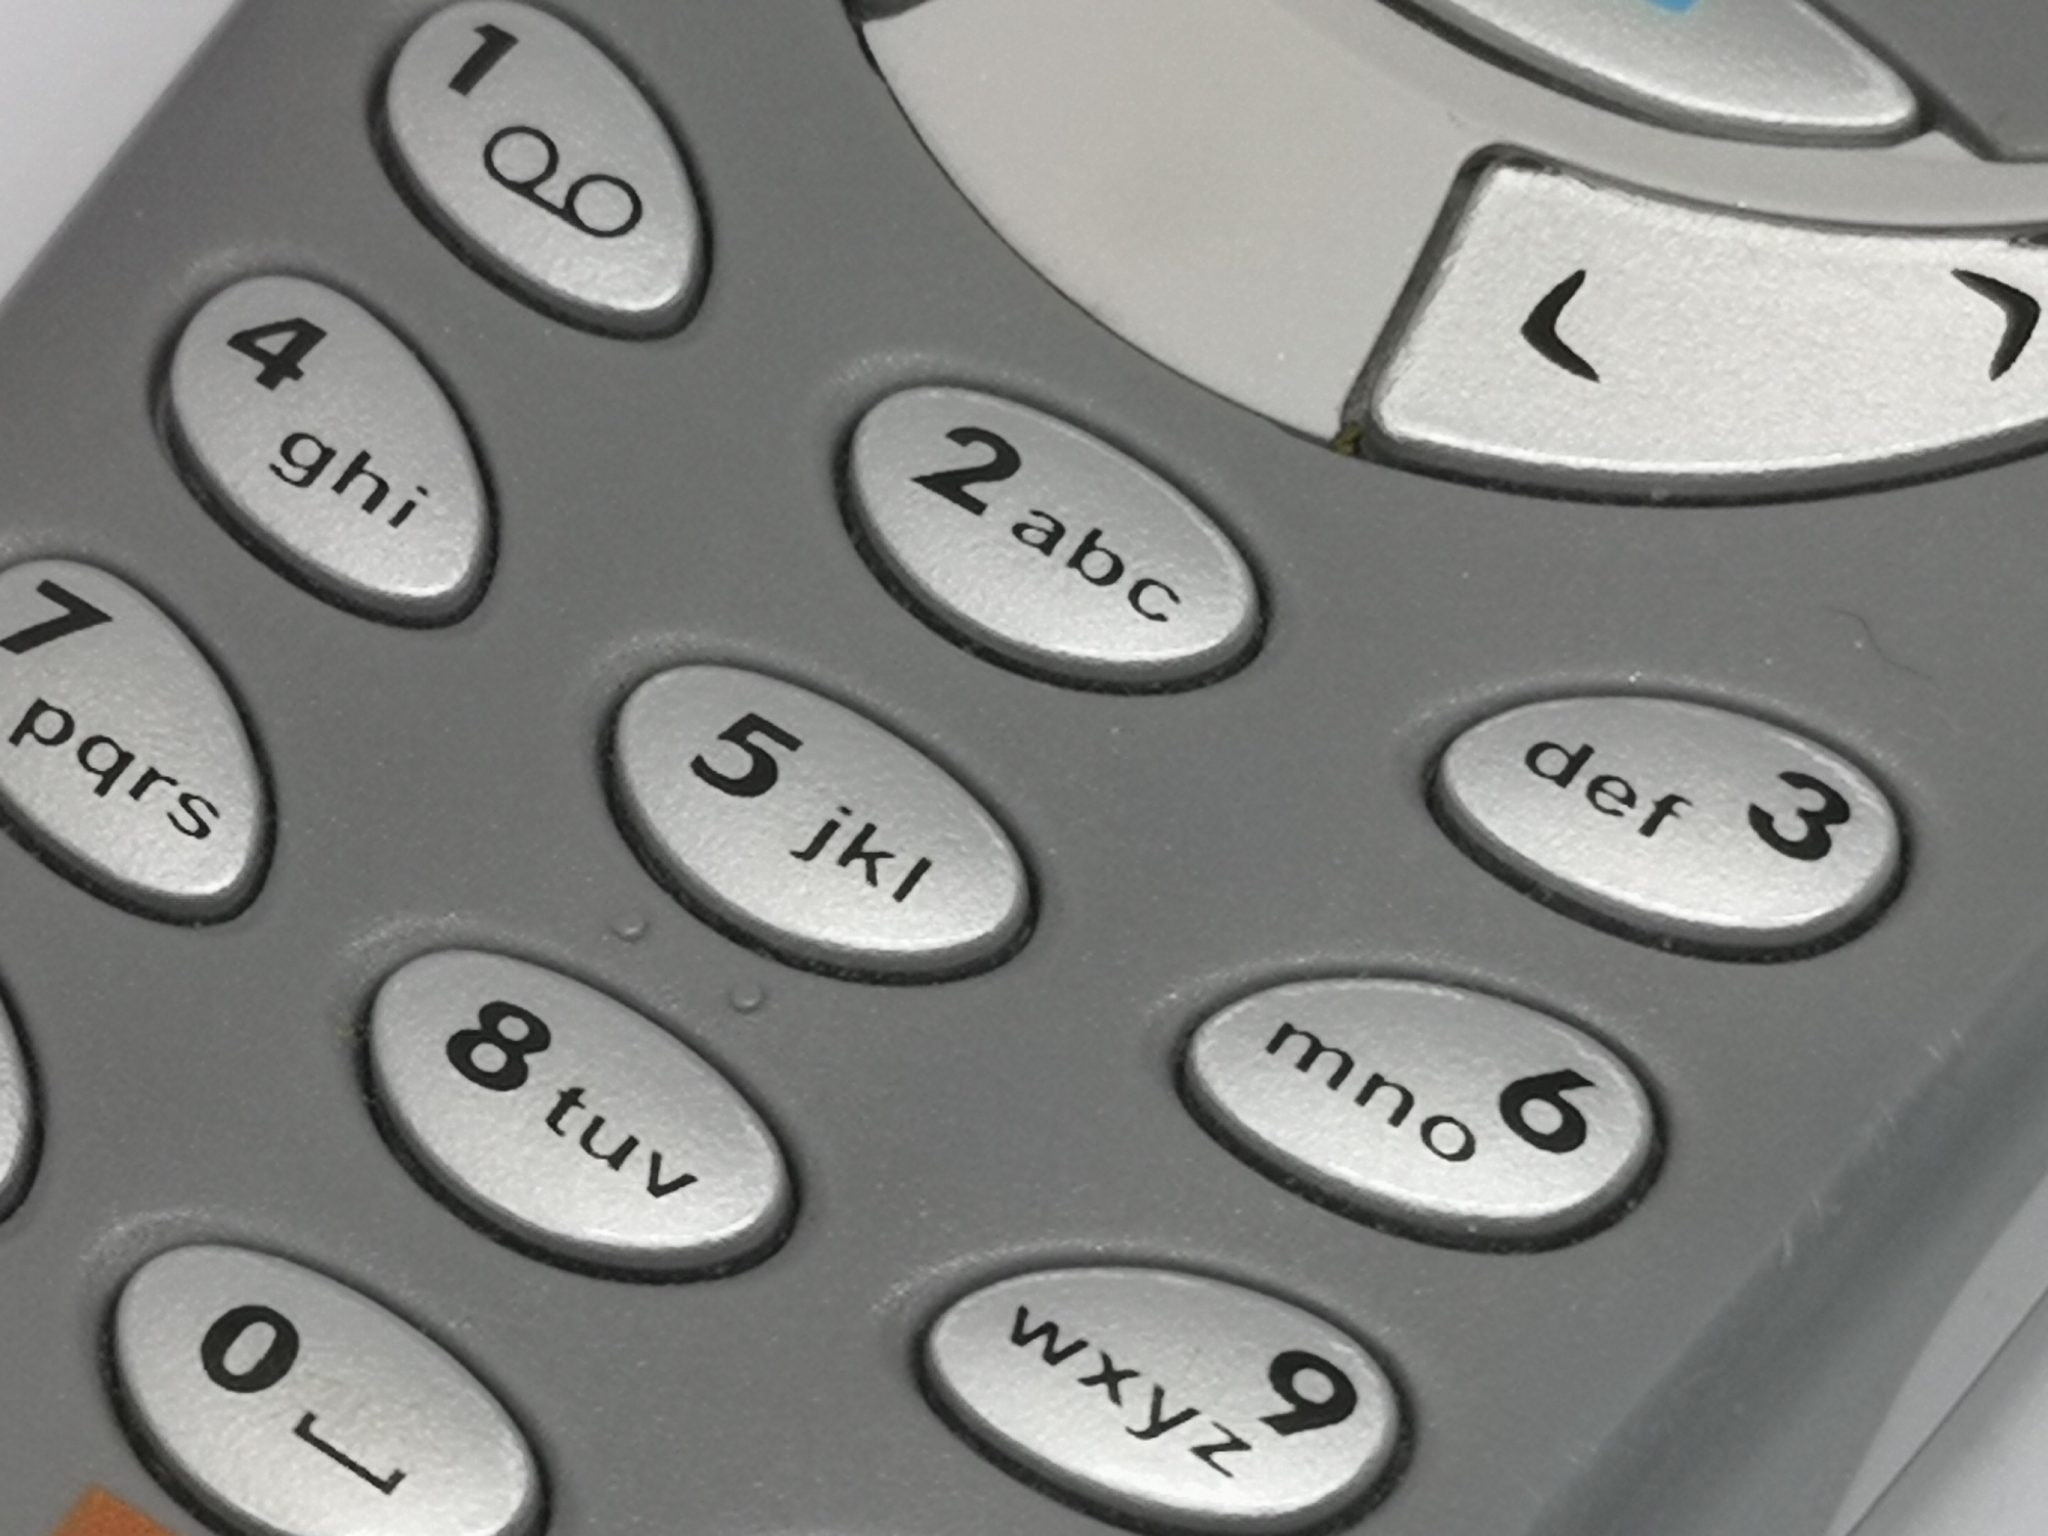 Nokia 3310 Vintage Mobile Phone Review: Best Selling Phone of 2000